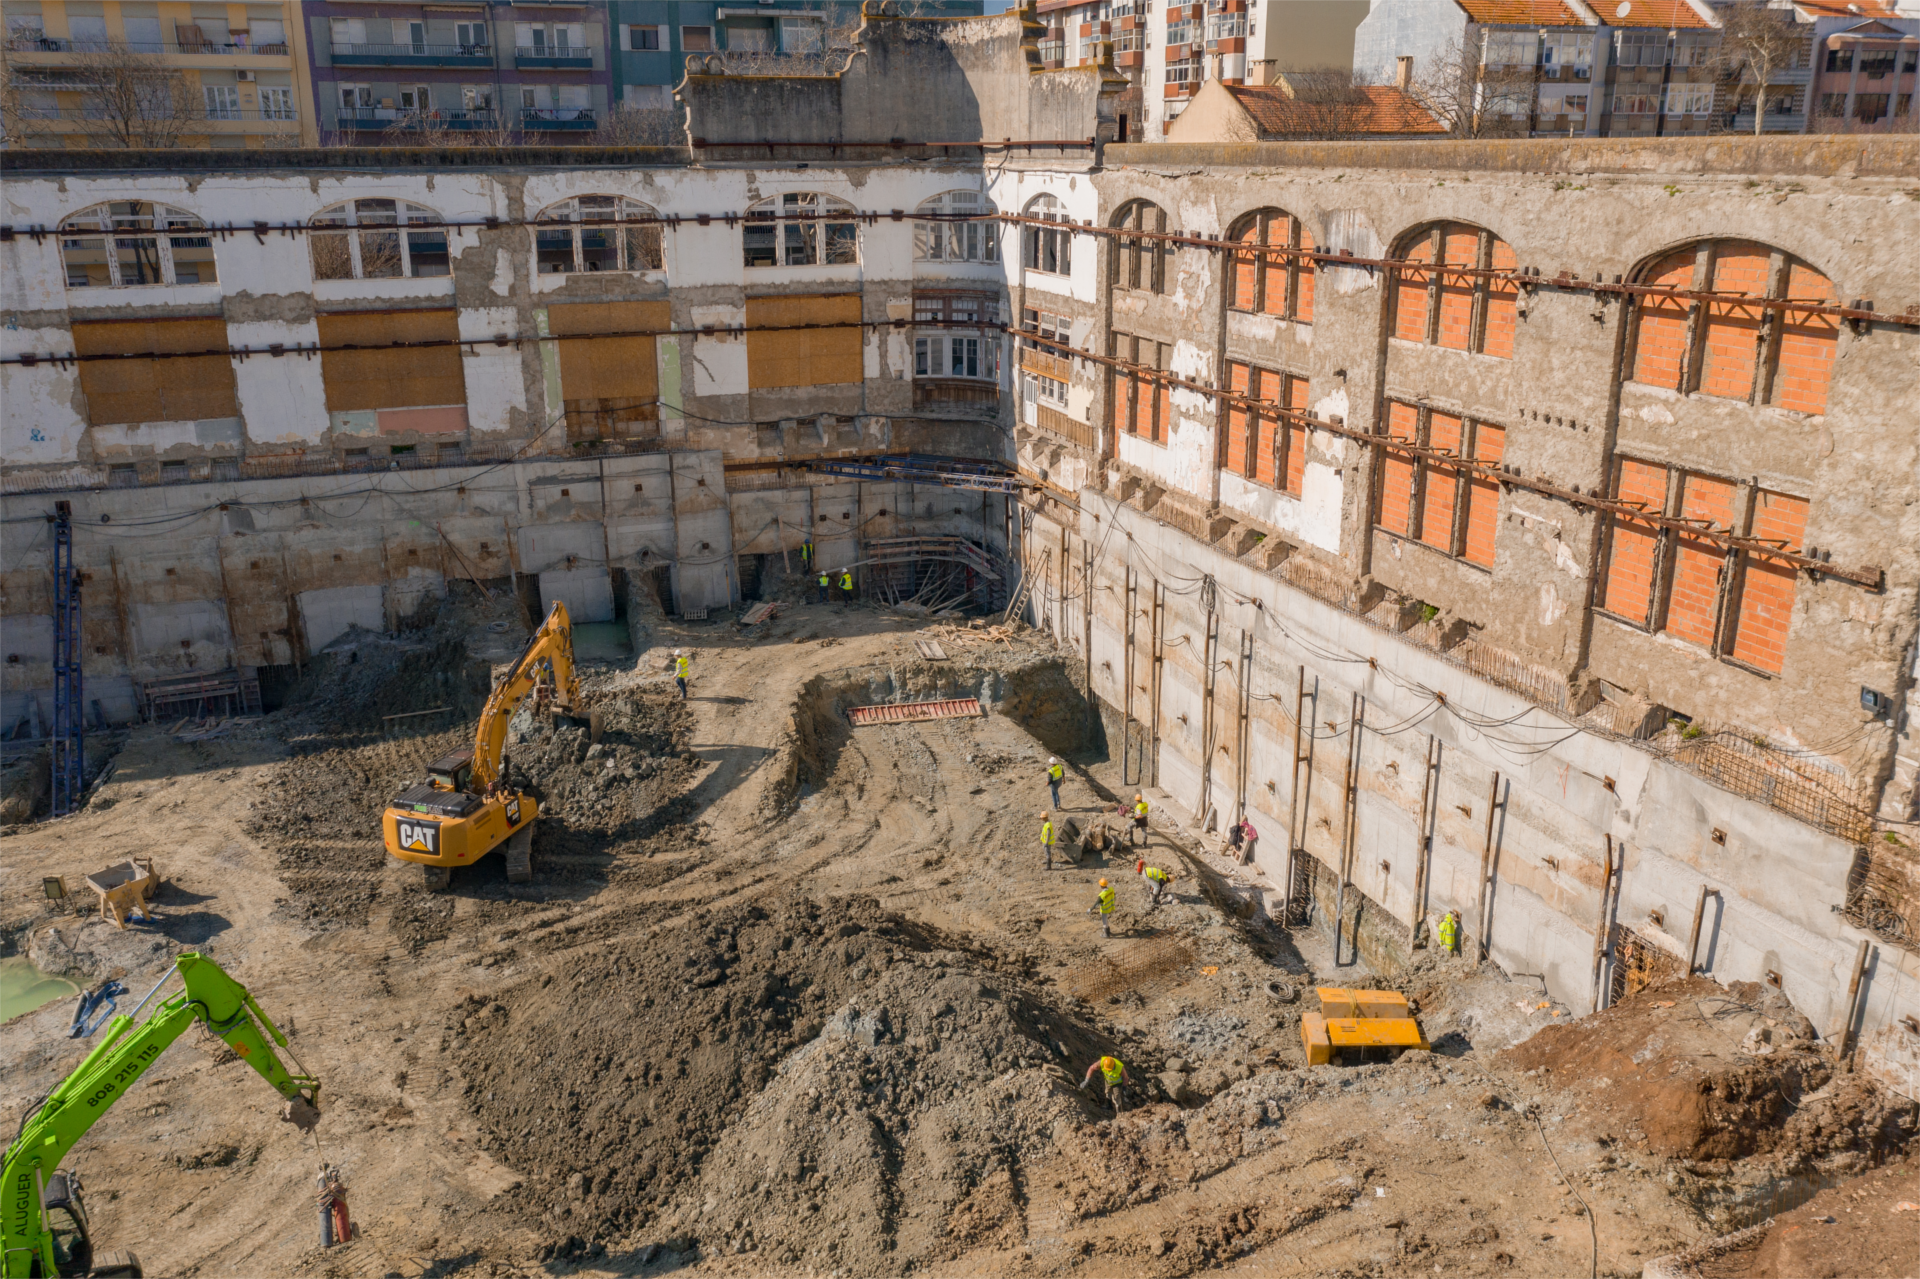 February 2020: Continuation of excavation and containment work